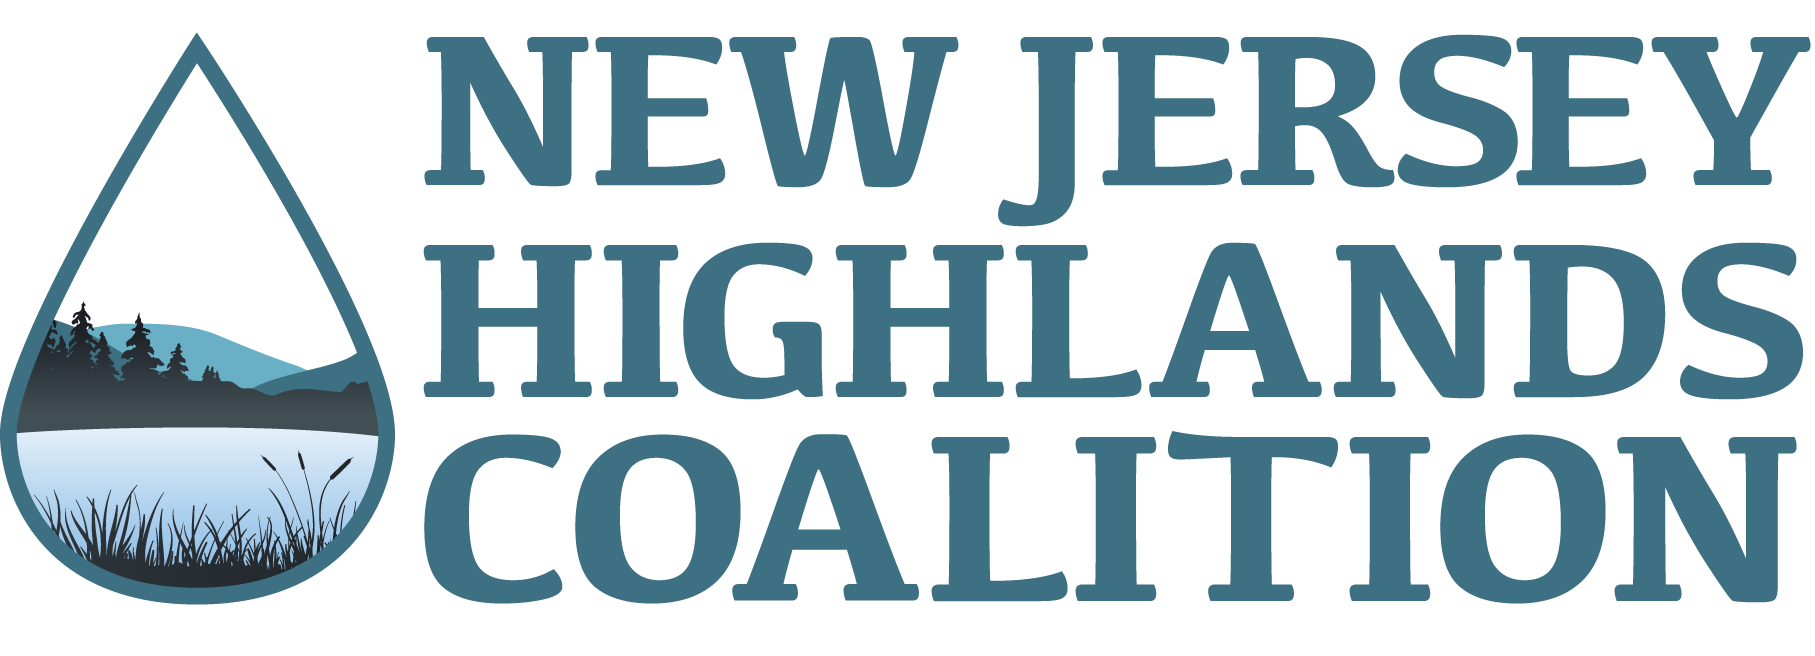 New Jersey Highlands Coalition